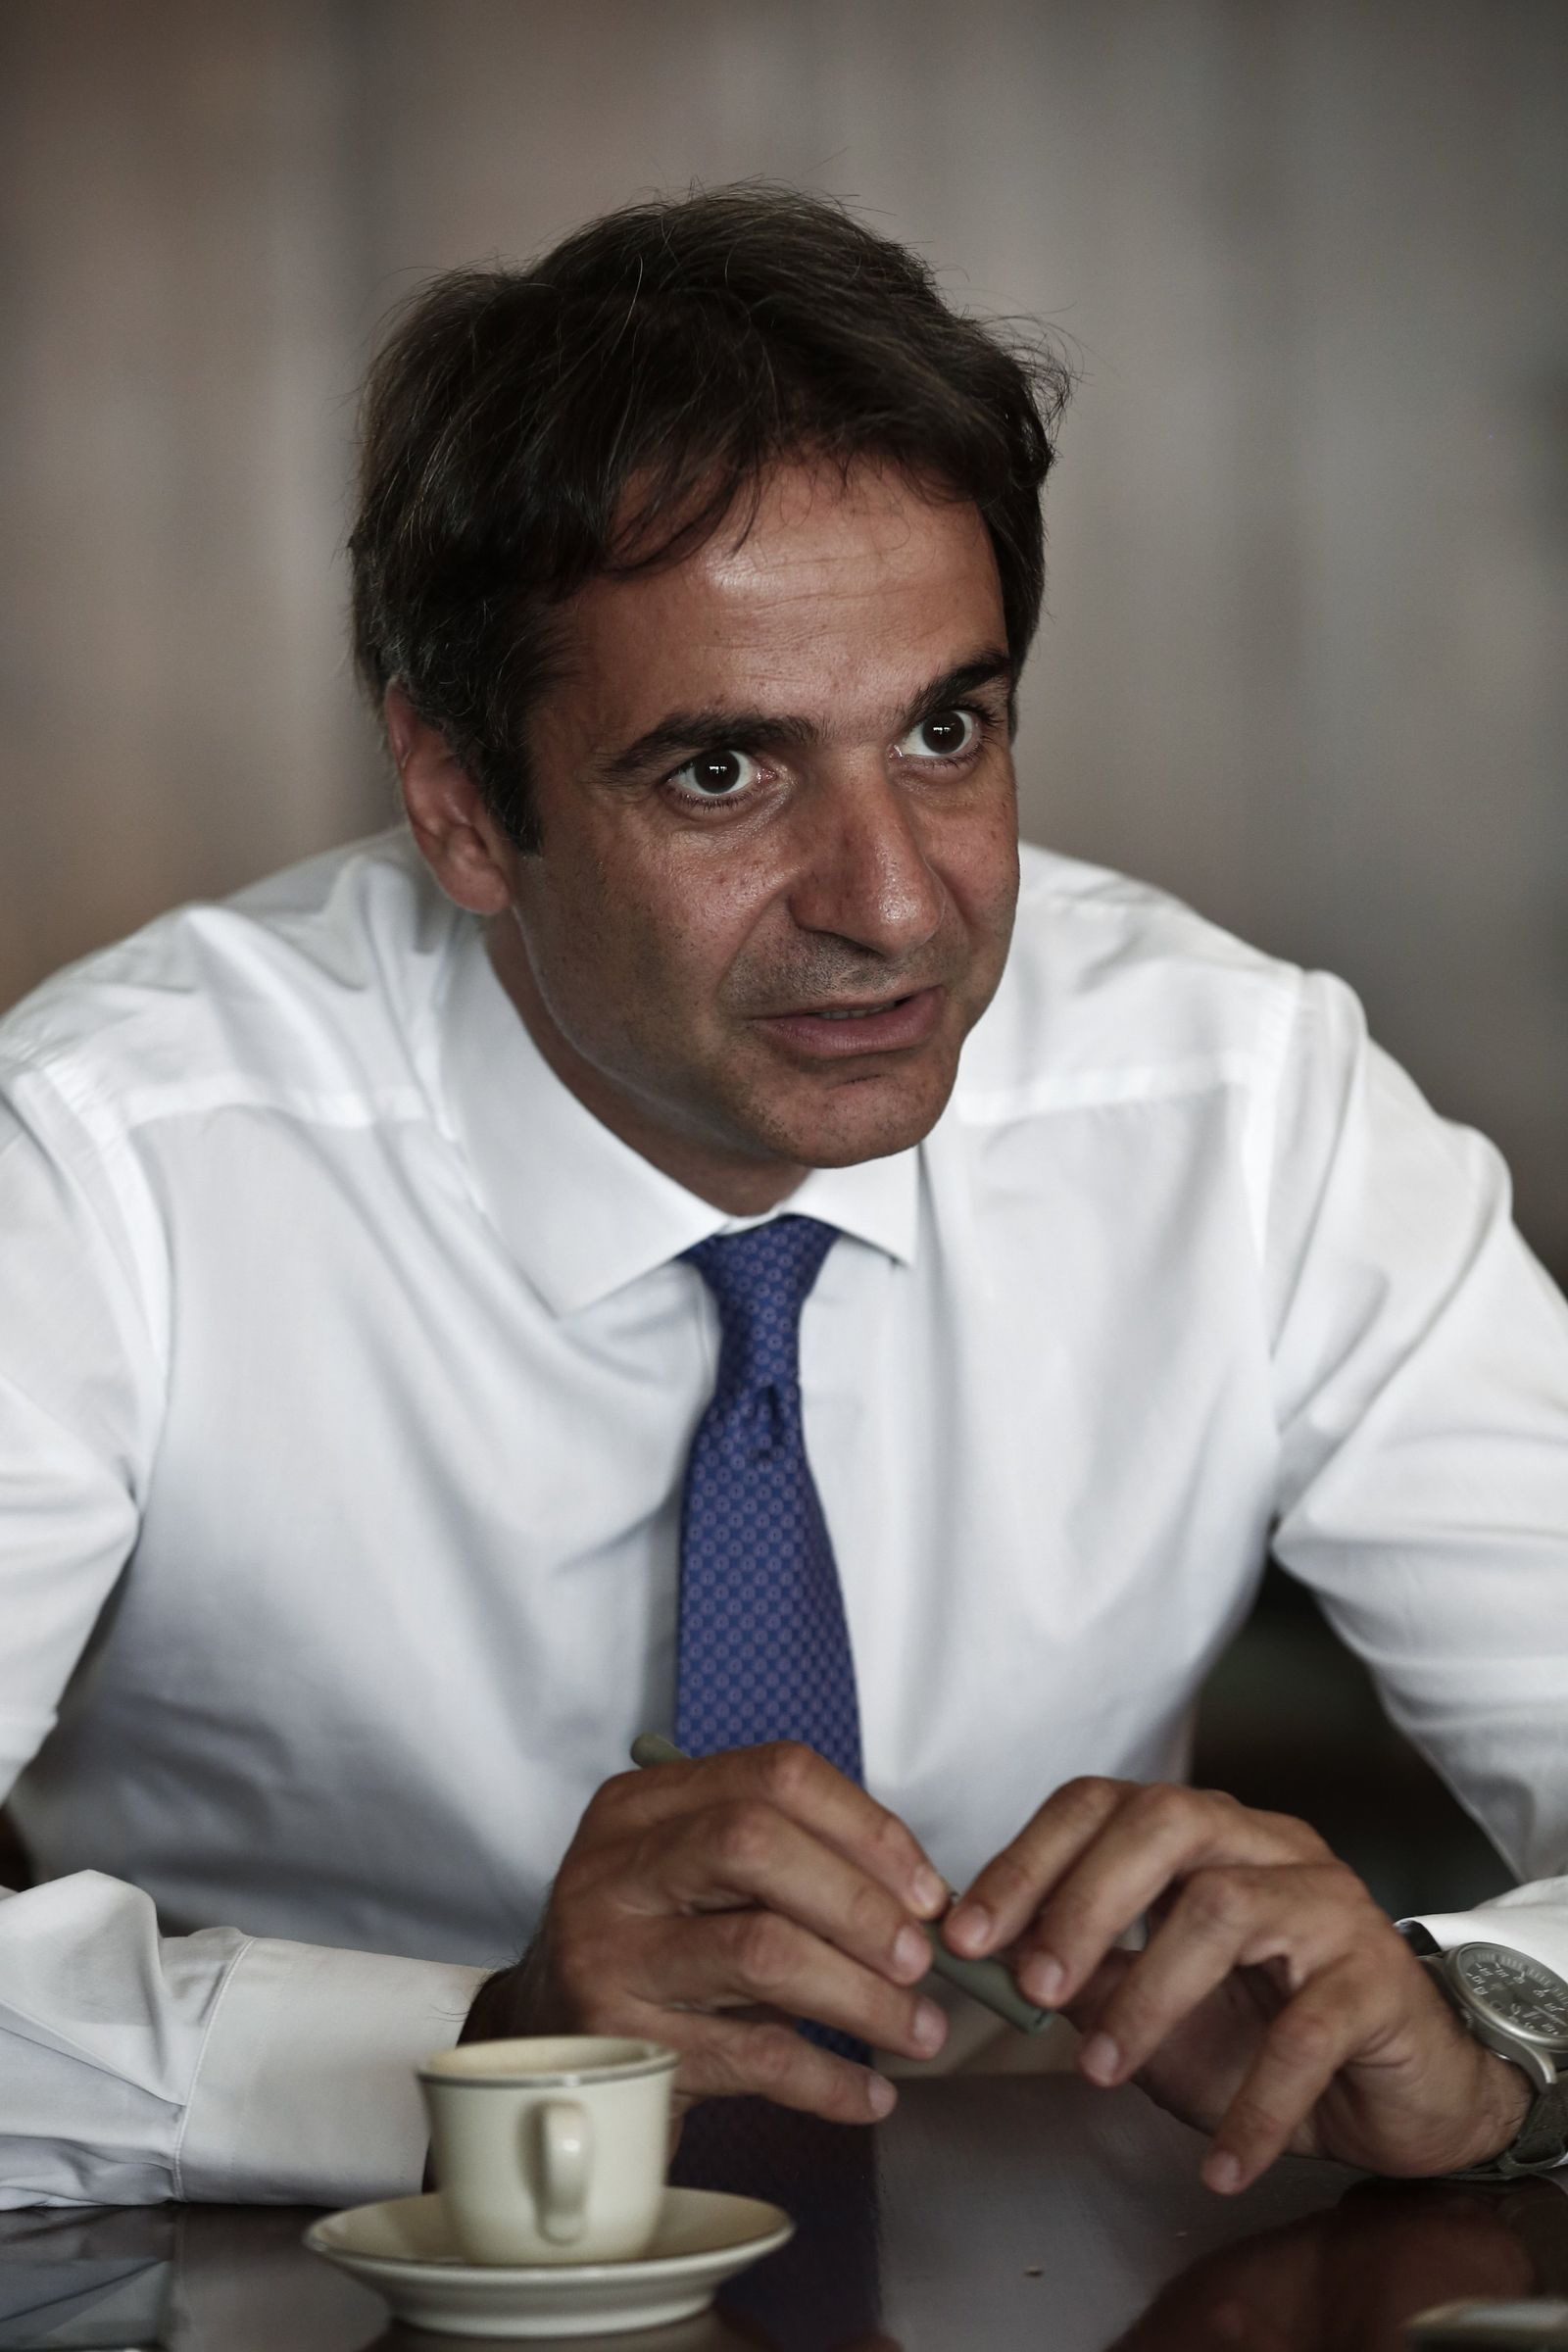 Greece's Administrative Reform minister Kyriakos Mitsotakis speaks during an interview with Reuters in Athens